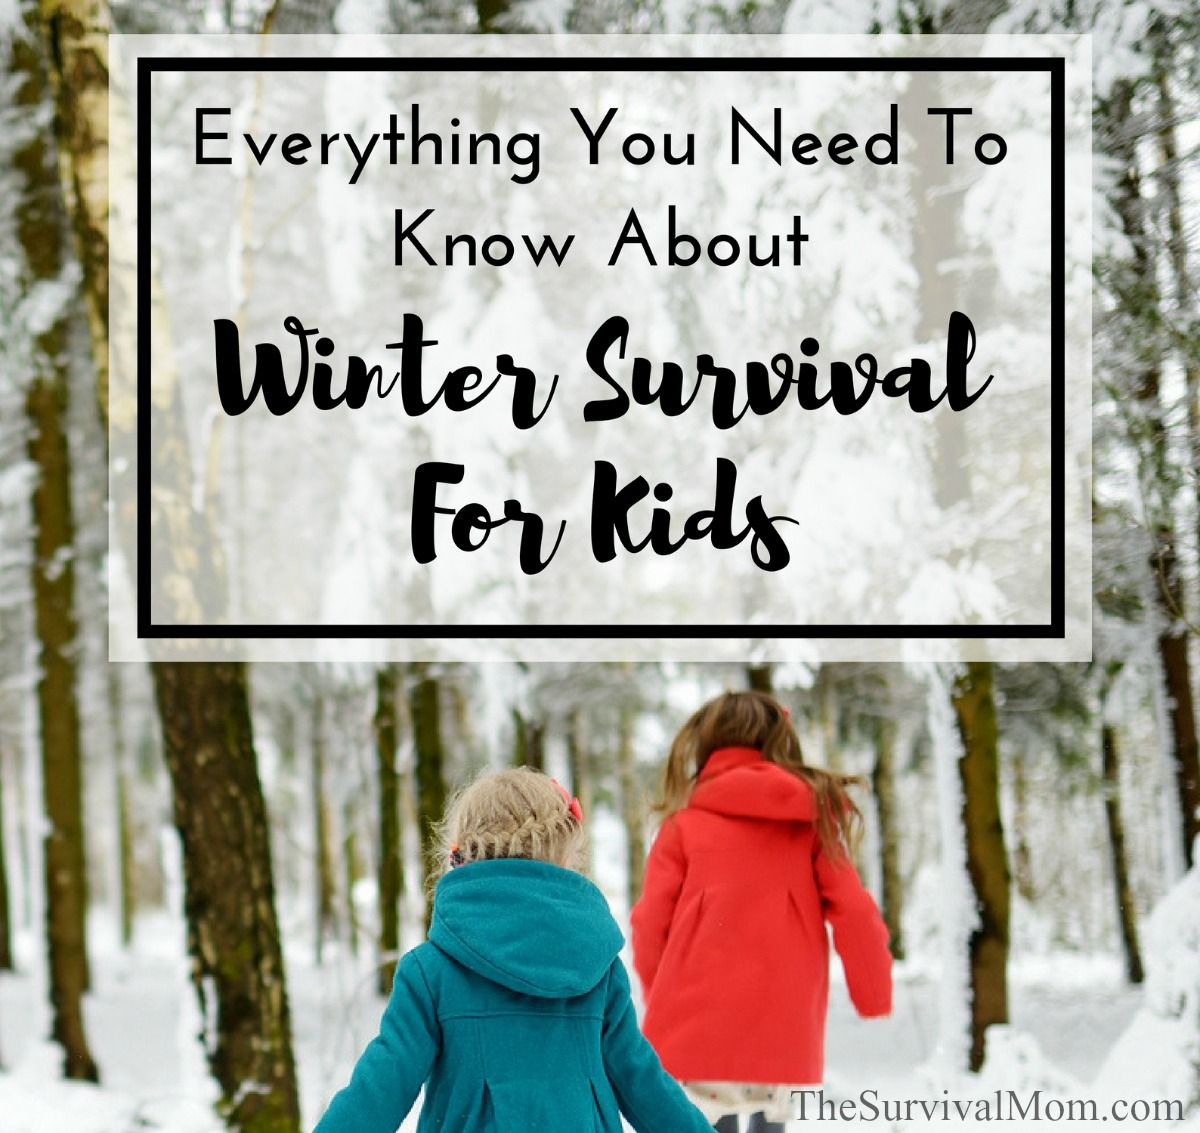 Everything You Need To Know About Winter Survival For Kids